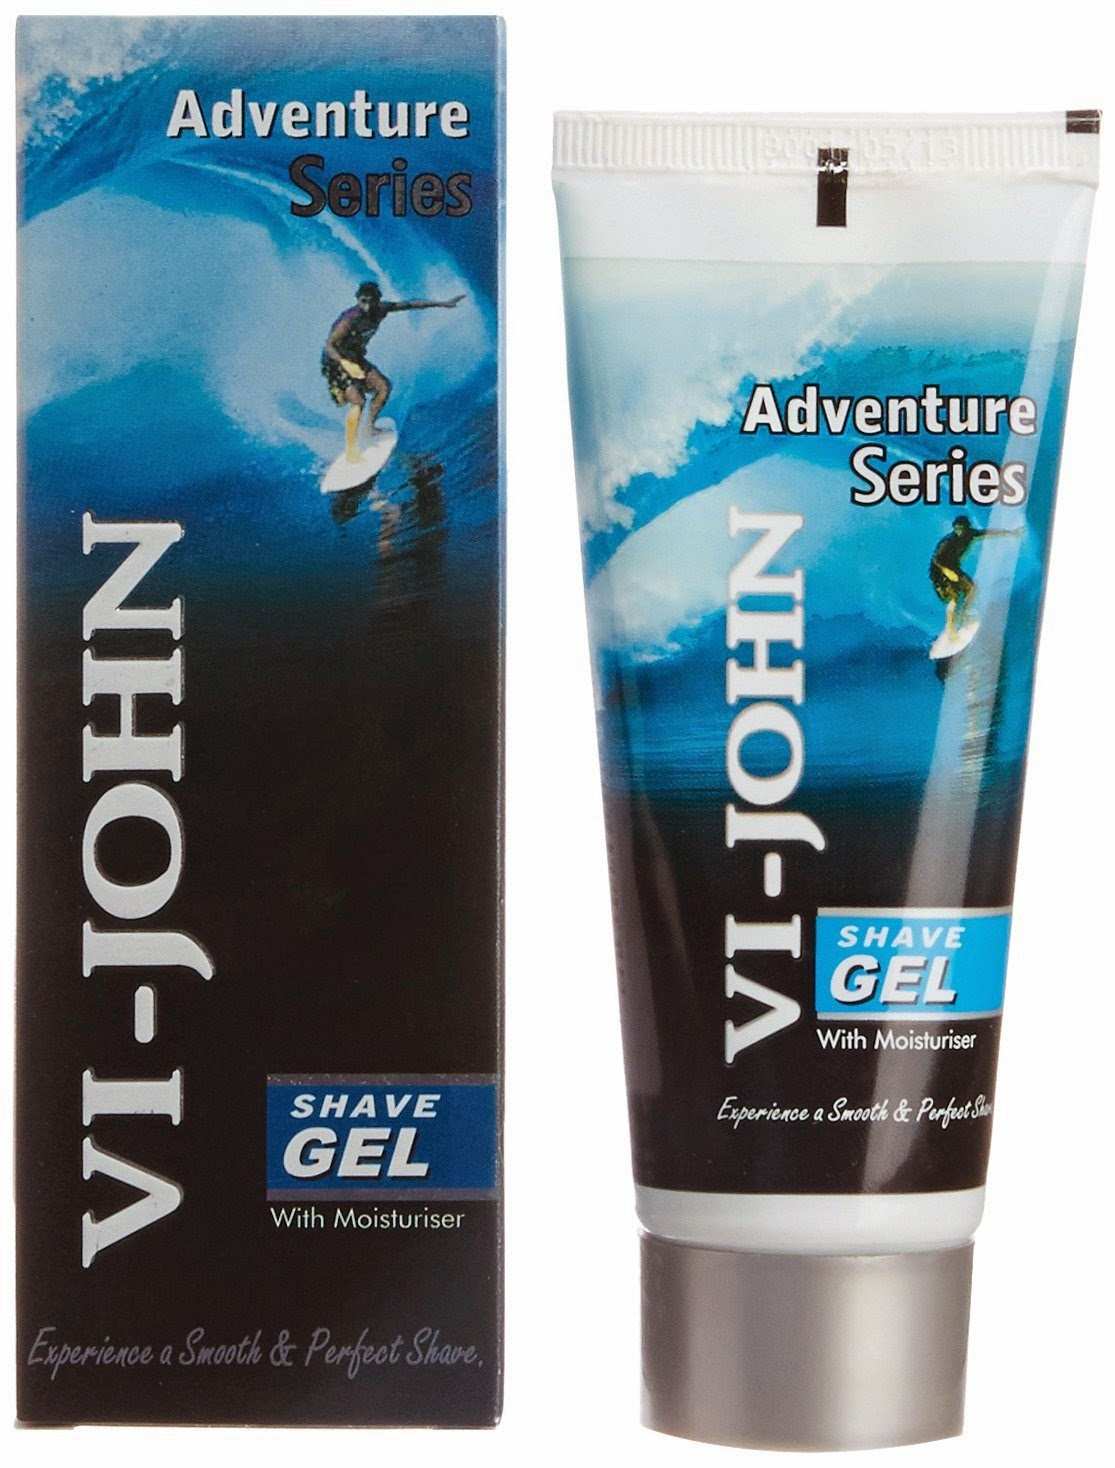 VI-John Adventure Series Shave Gel – 60 g worth Rs 50 for Rs 42